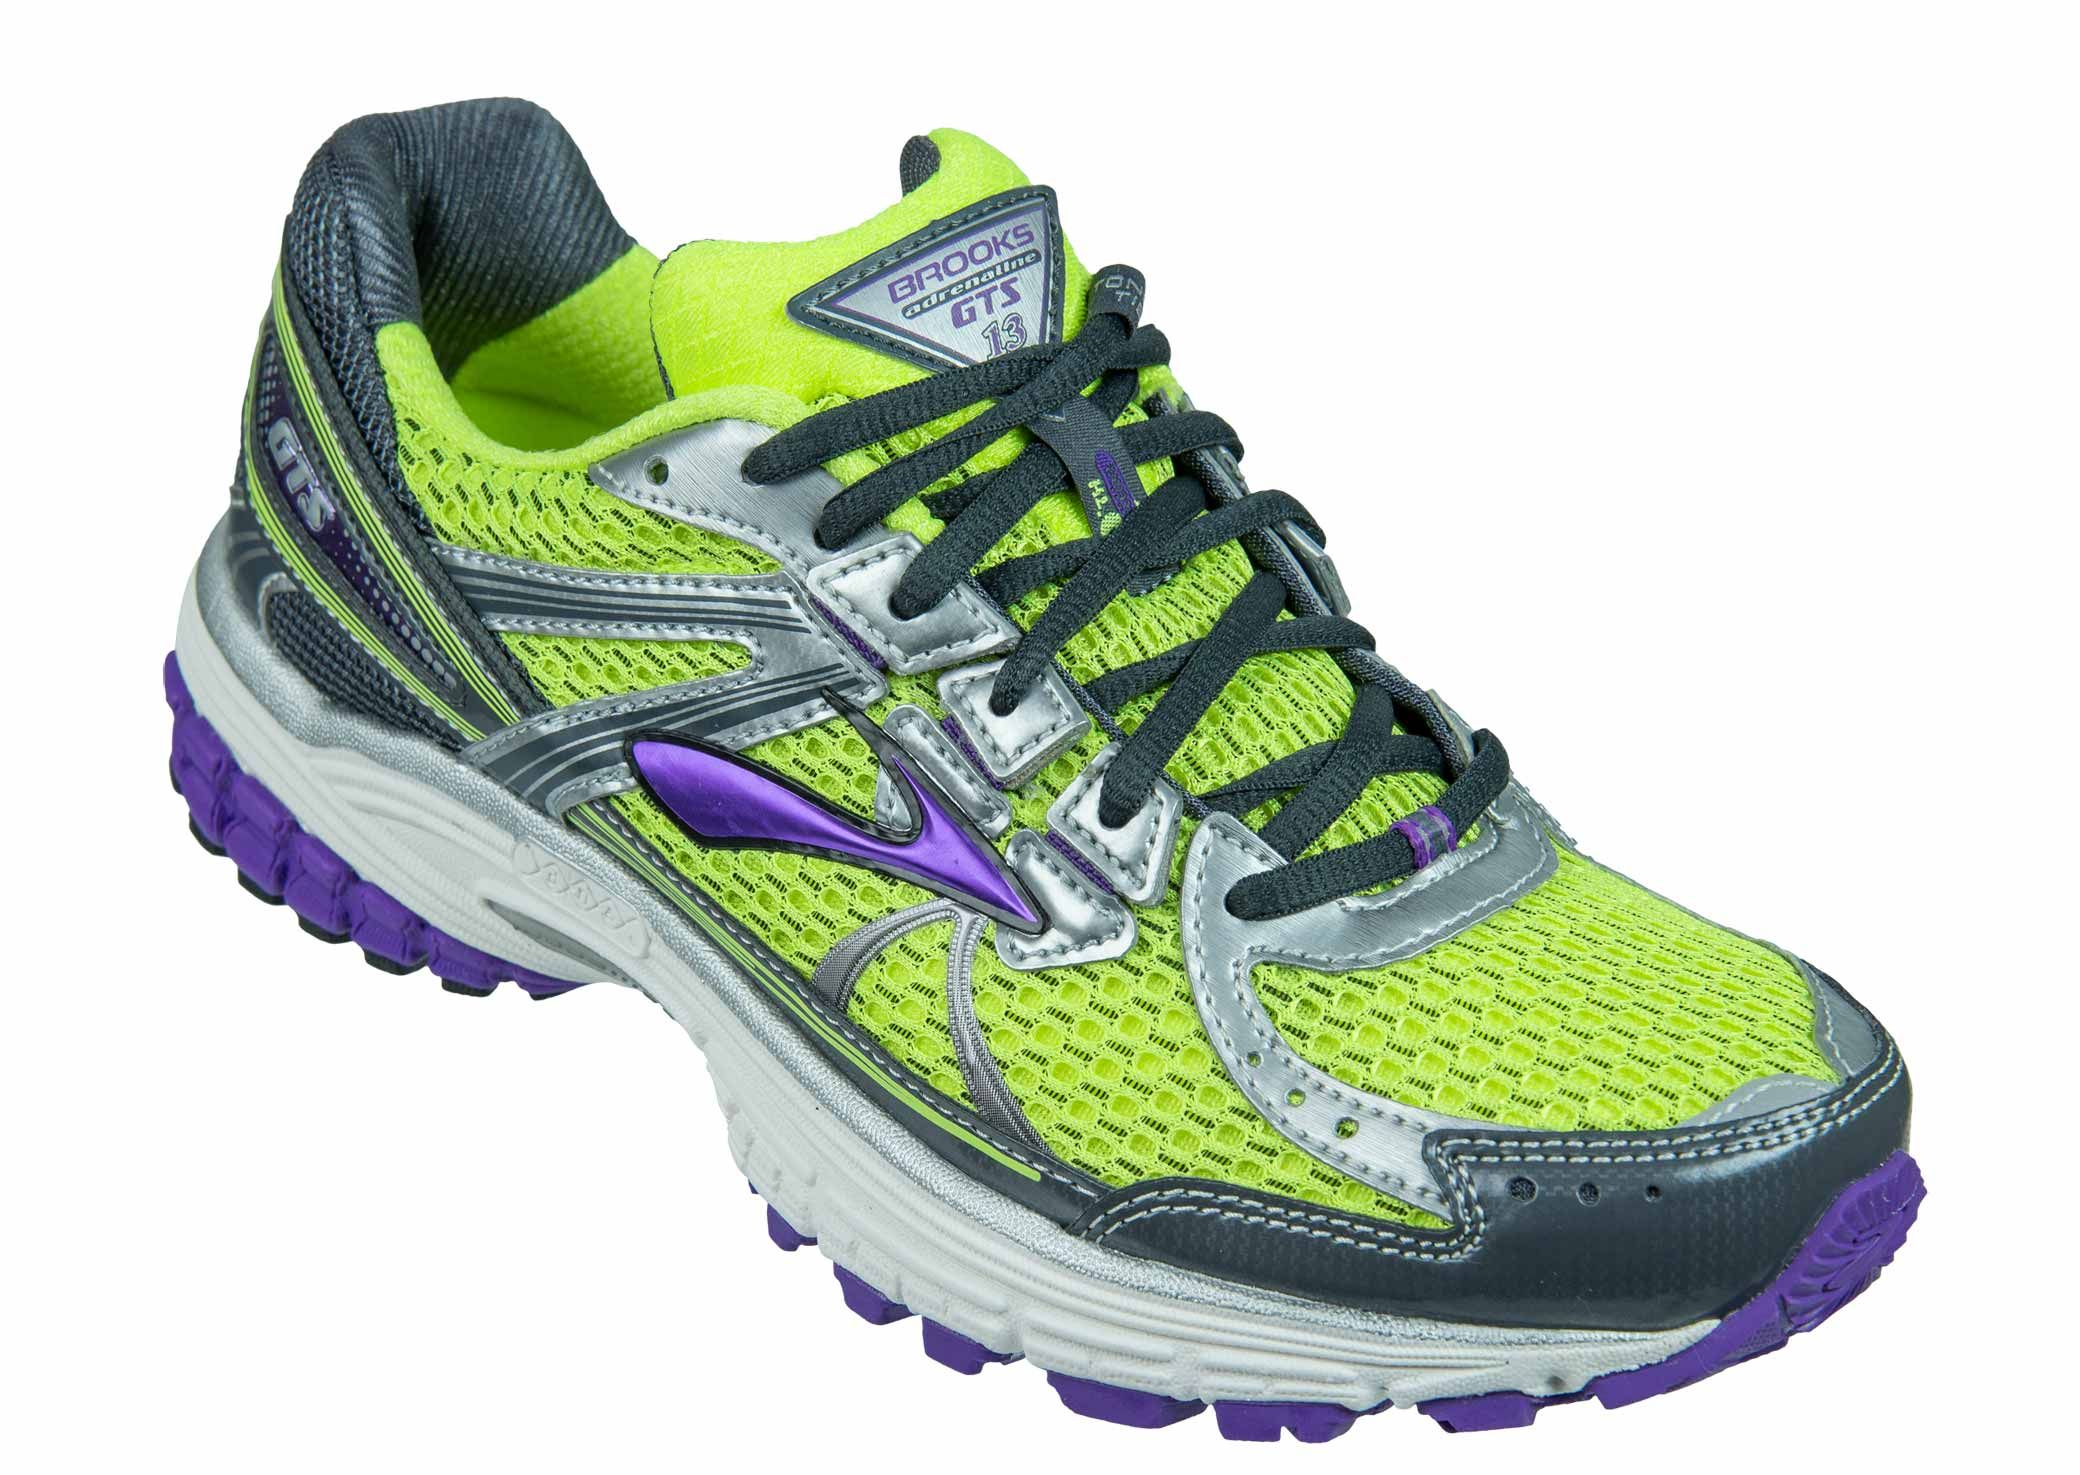 99e8da1482a ... Brooks Adrenaline GTS 13 women s running shoe with Brooks DNA -  BrooksRunning.com for ...